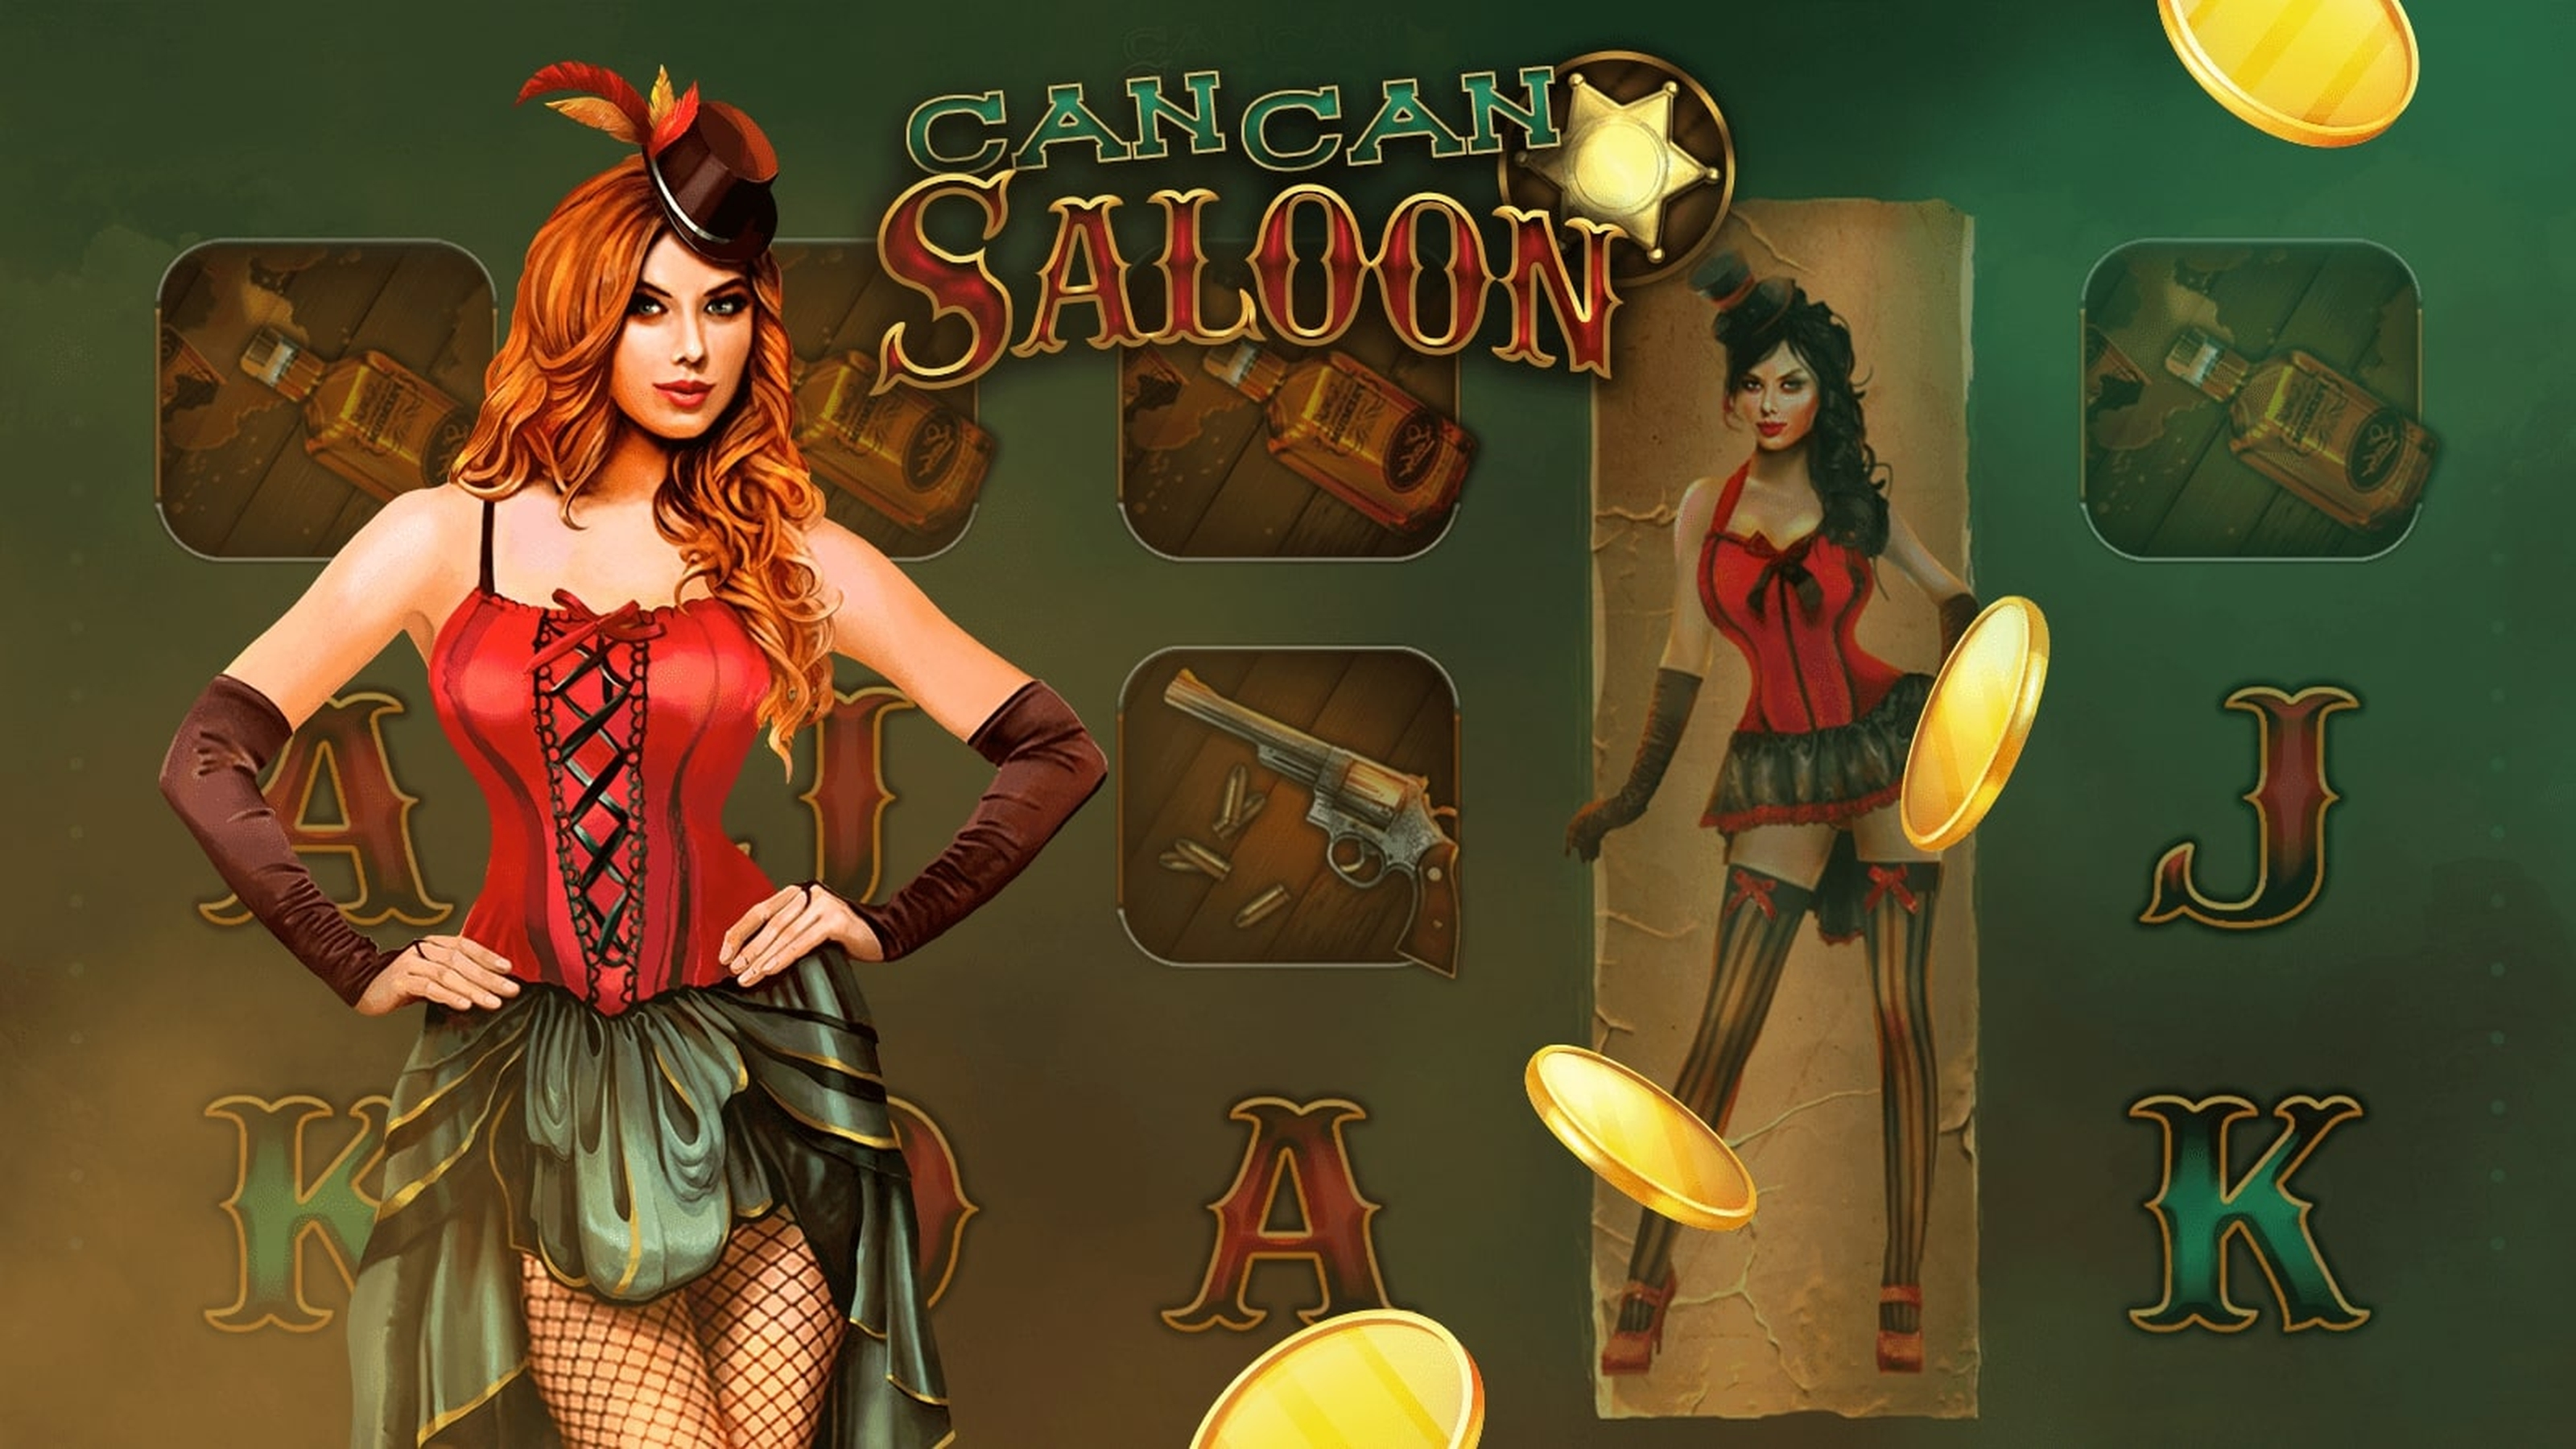 The CanCan Saloon Online Slot Demo Game by Mascot Gaming